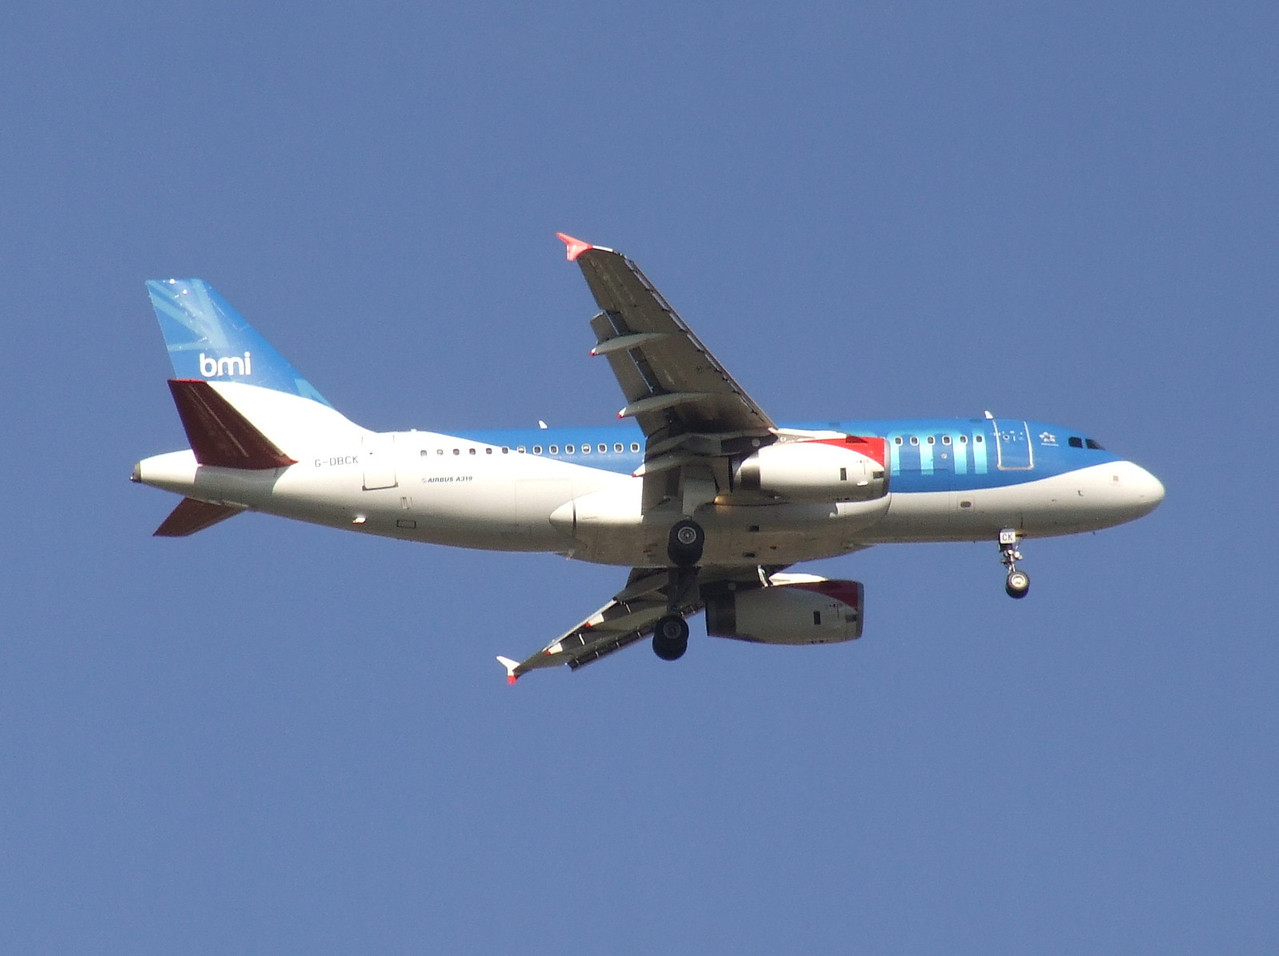 A BMI British Midland Airbus A319-131 (G-DBCK) on approach to Glasgow Airport. Now in use with British Airways after the IAG takeover.